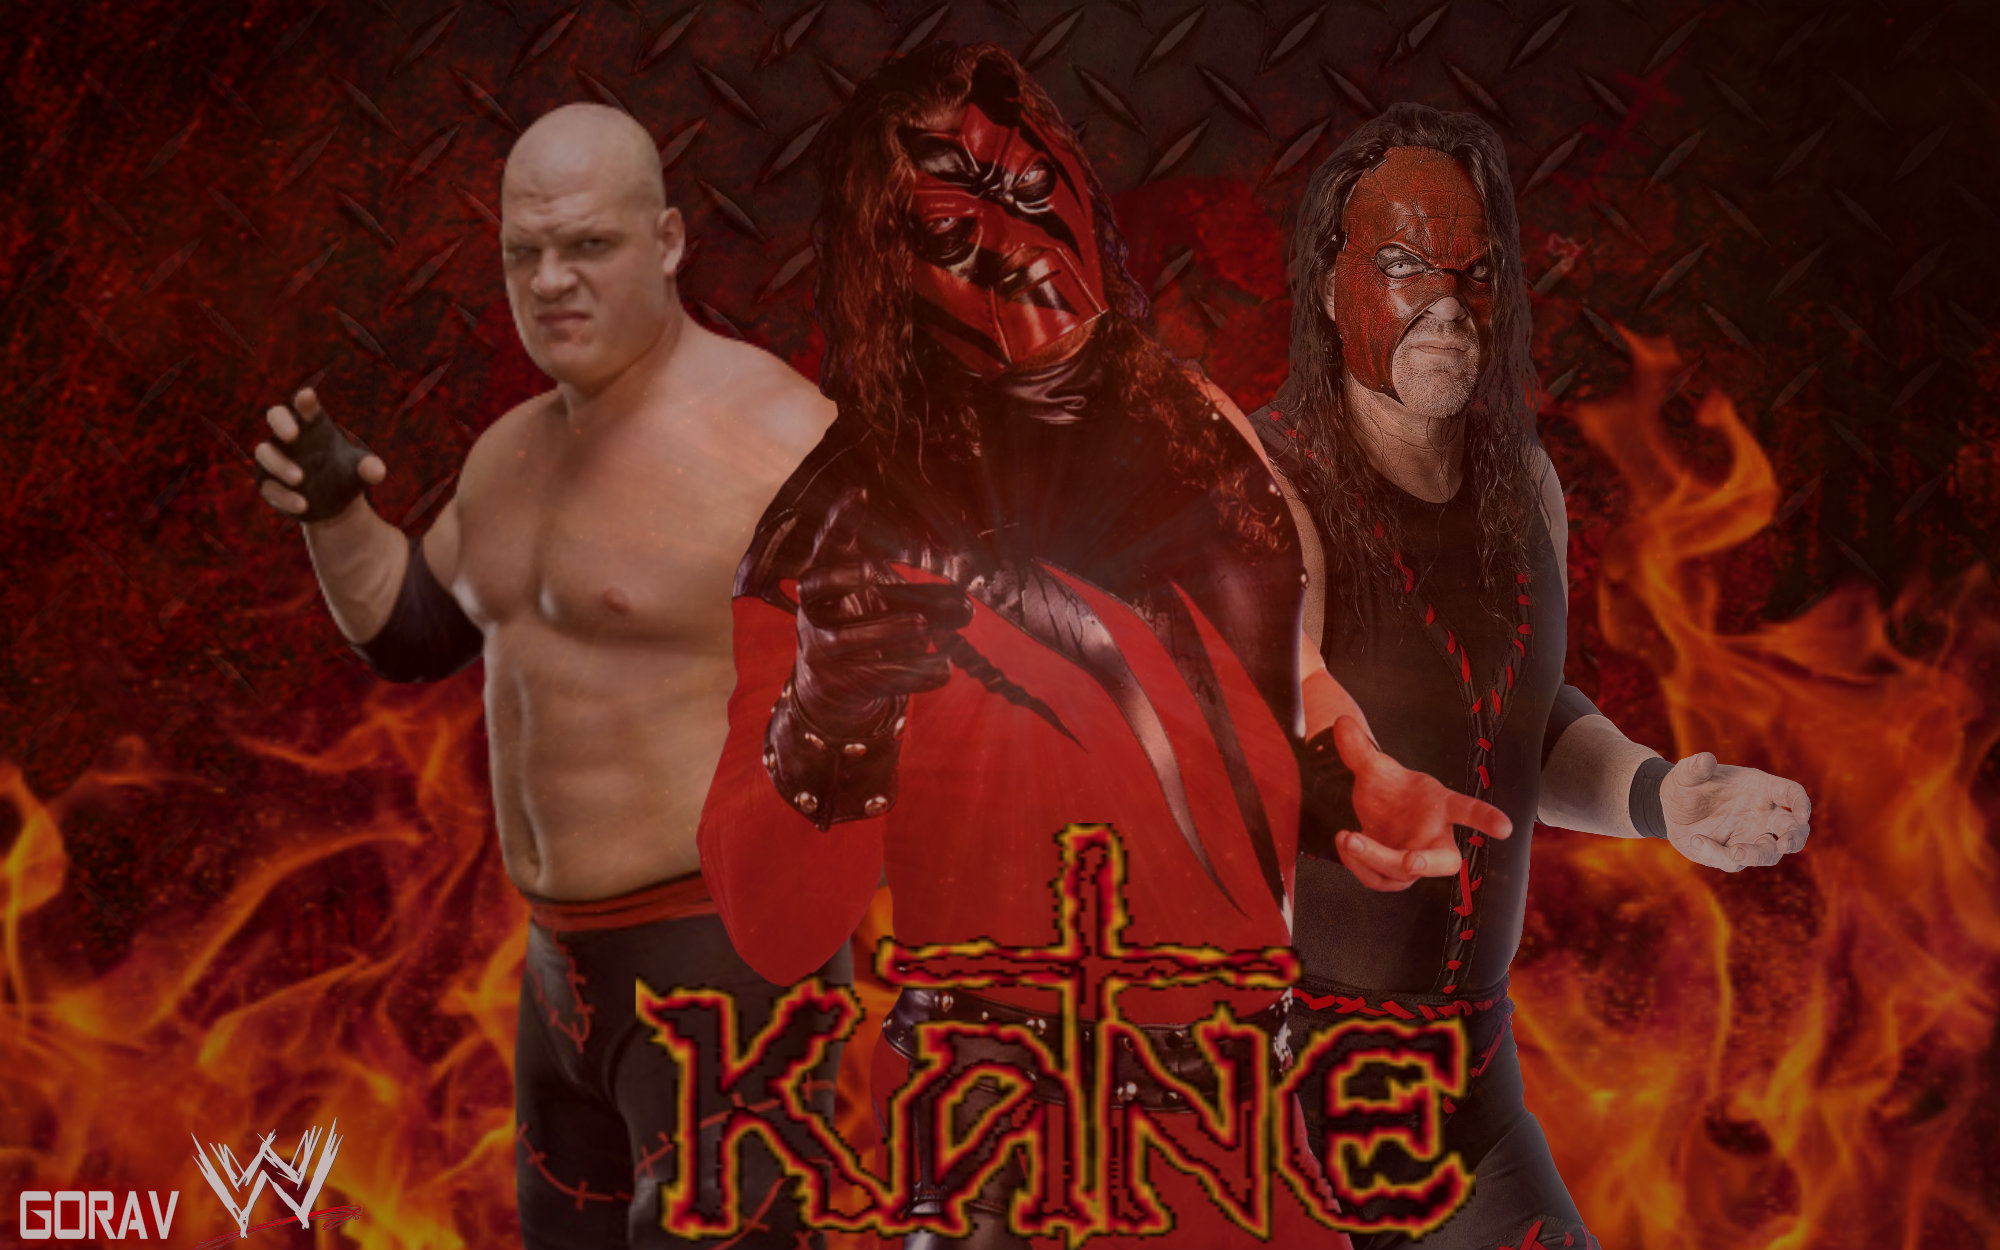 WWE Images KANE WALLPAPER HD Wallpaper And Background Photos